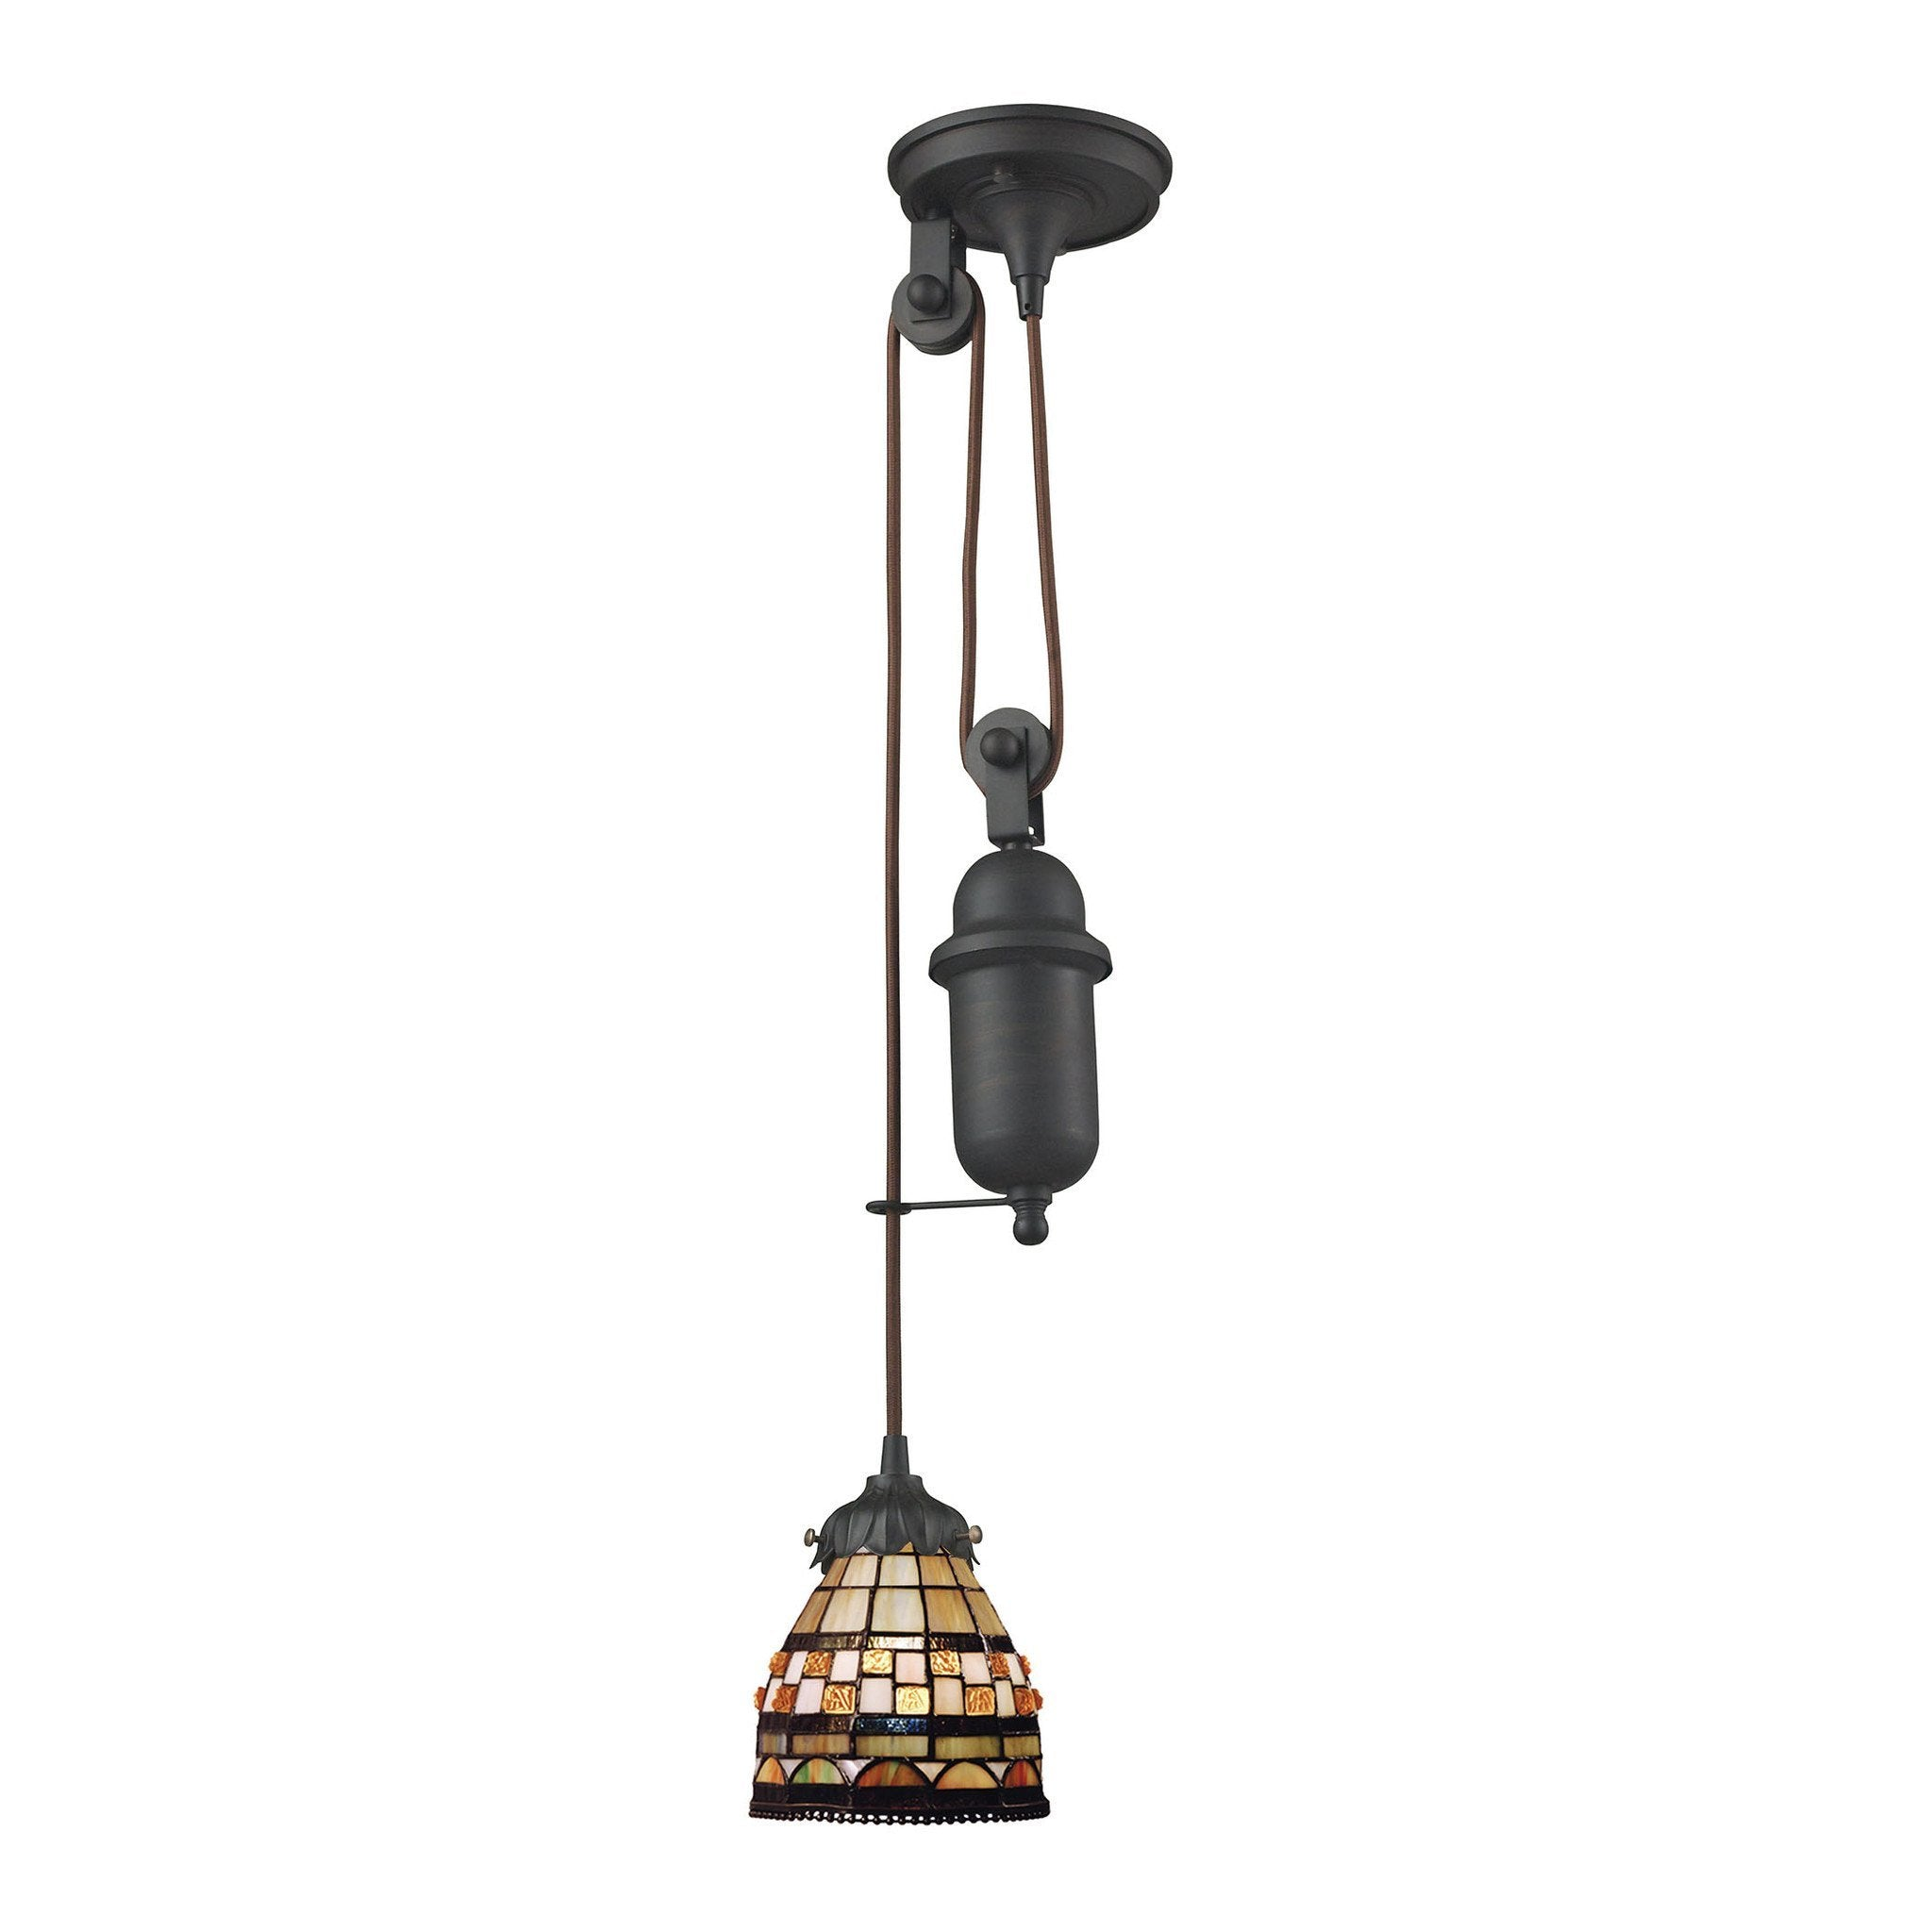 ELK Lighting 081-TB-10 Mix-N-Match Collection Tiffany Bronze Finish